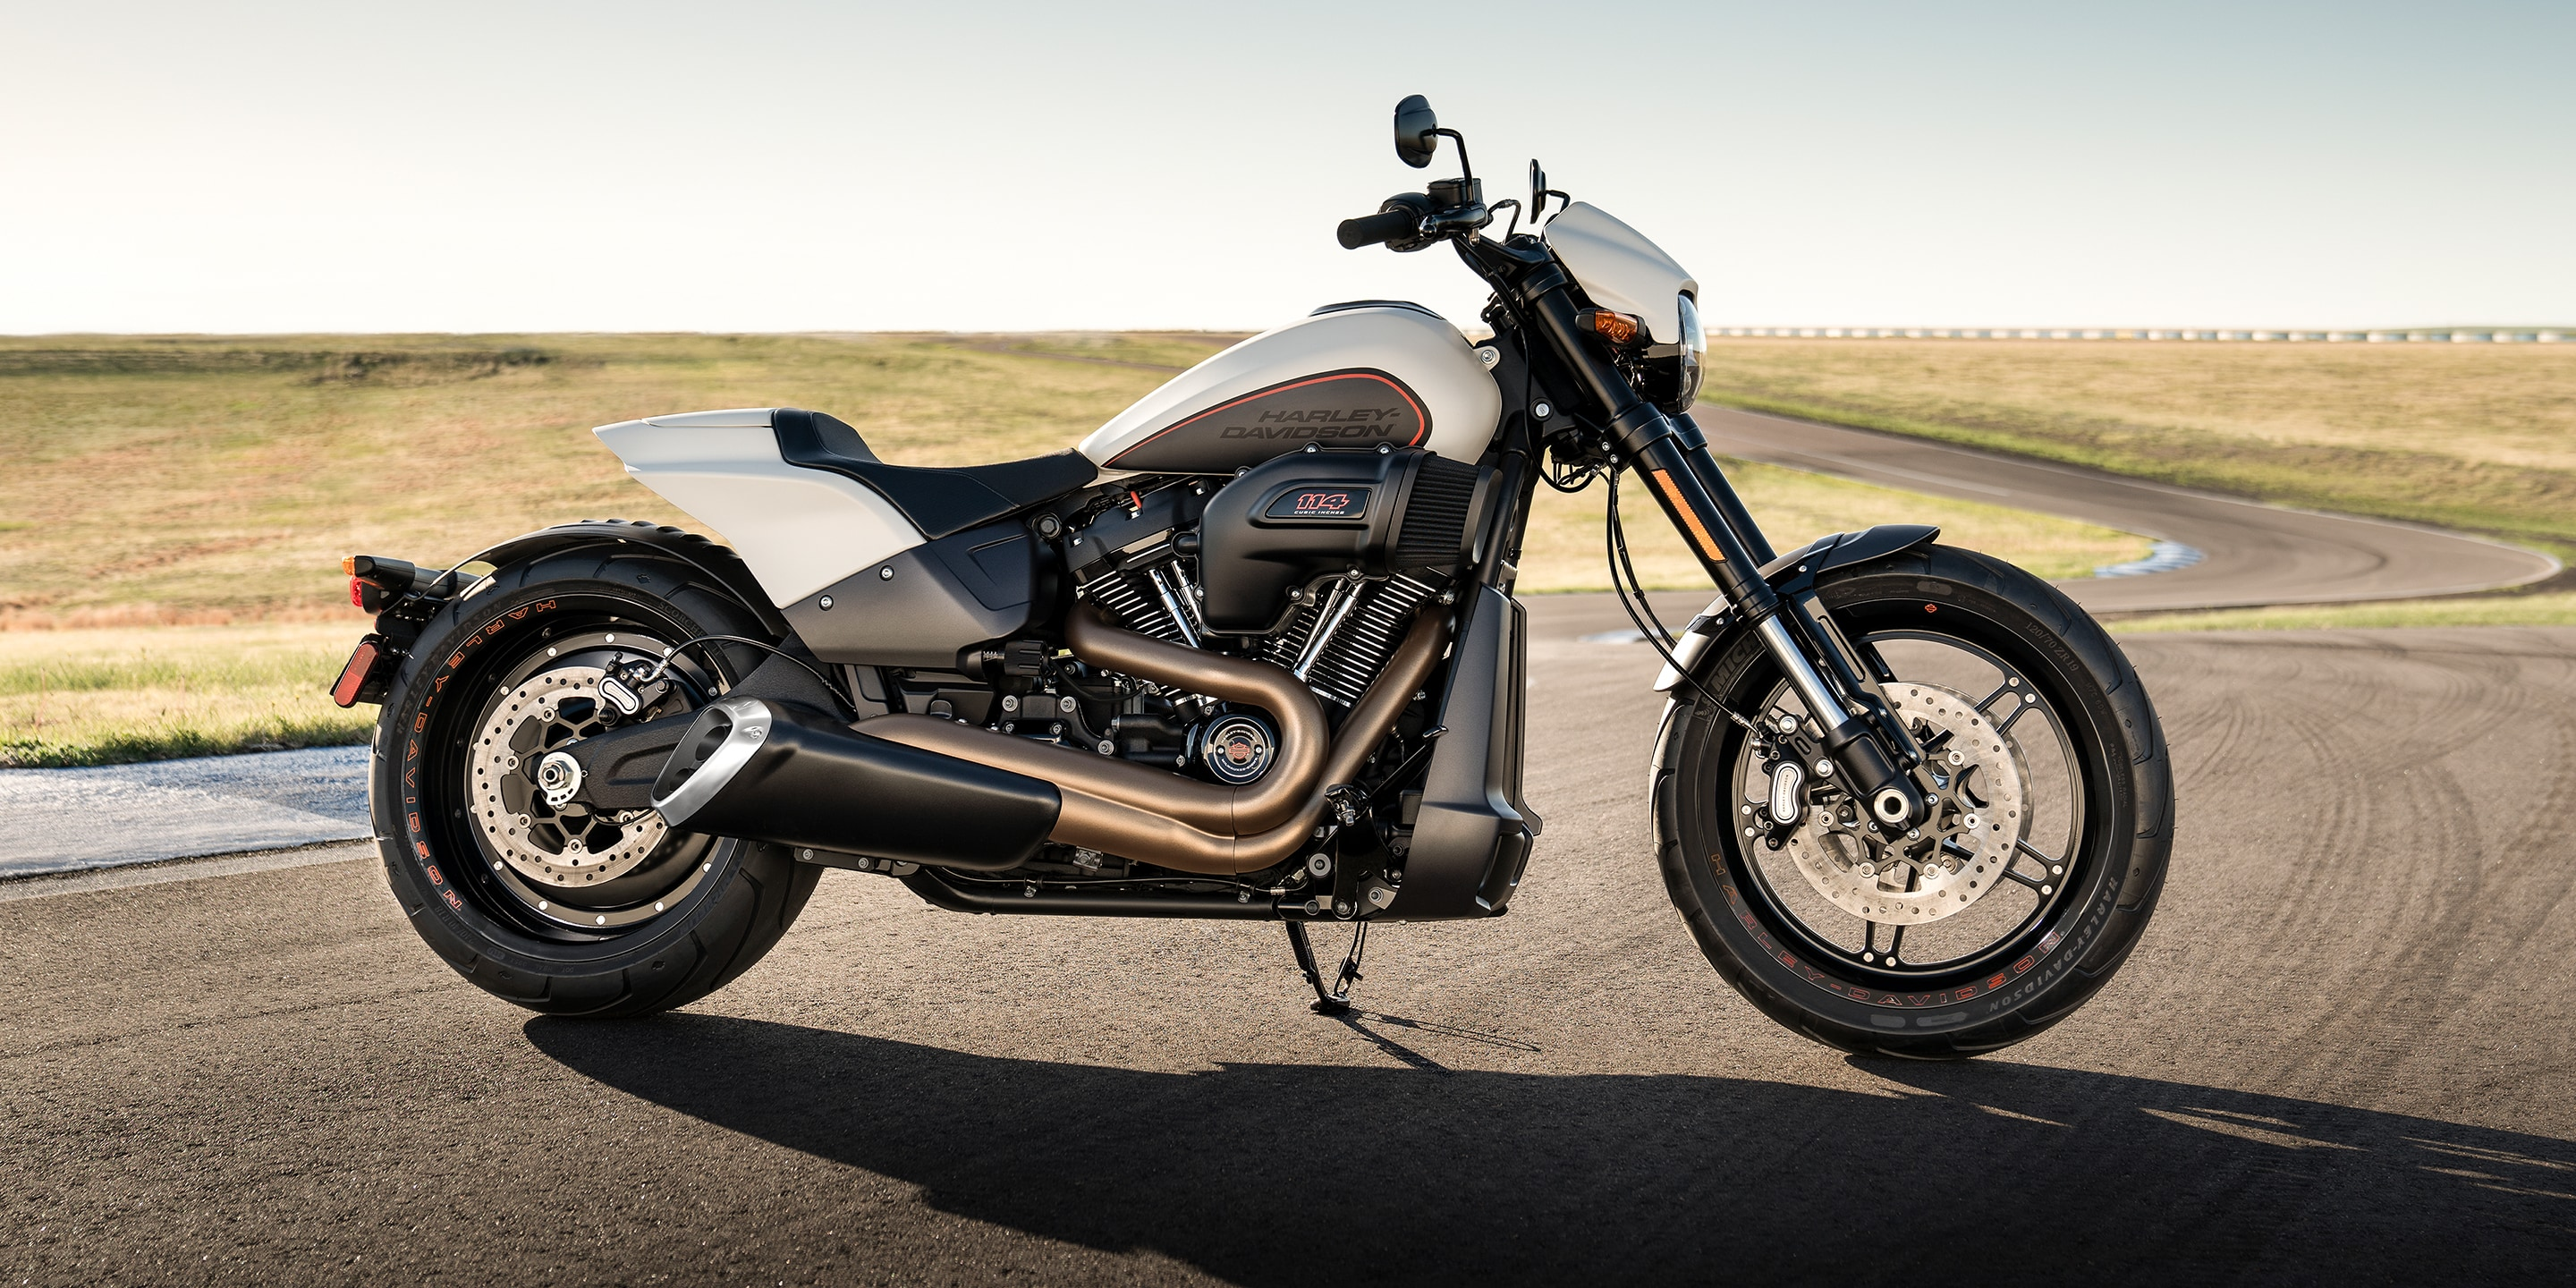 2019 FXDR Motorcycle